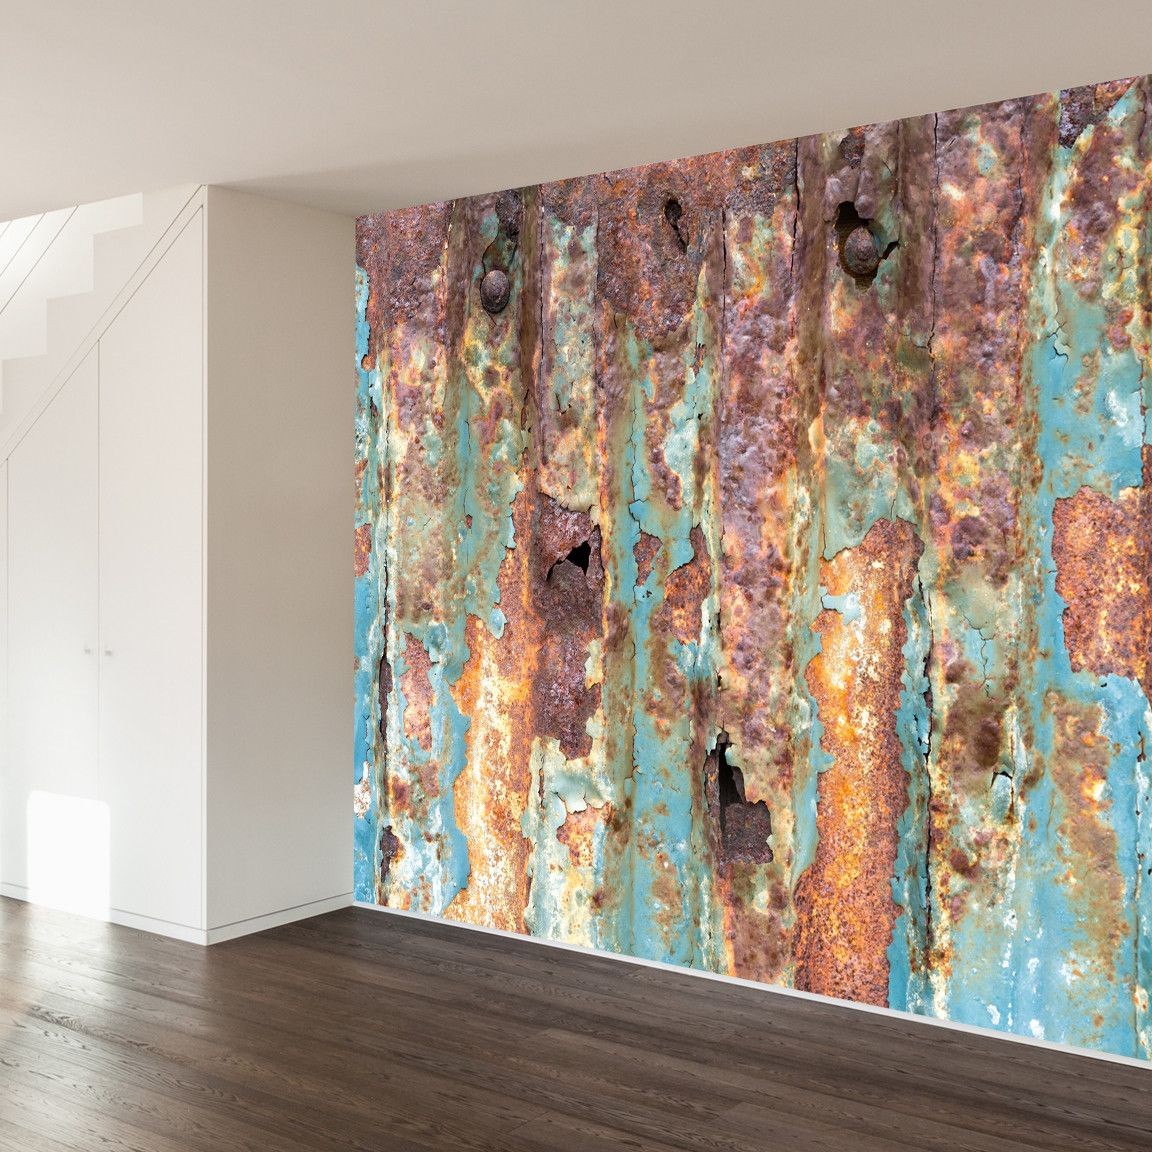 Removable Wall Murals paul moore's rusted metal mural wall decal | rusted metal, rust